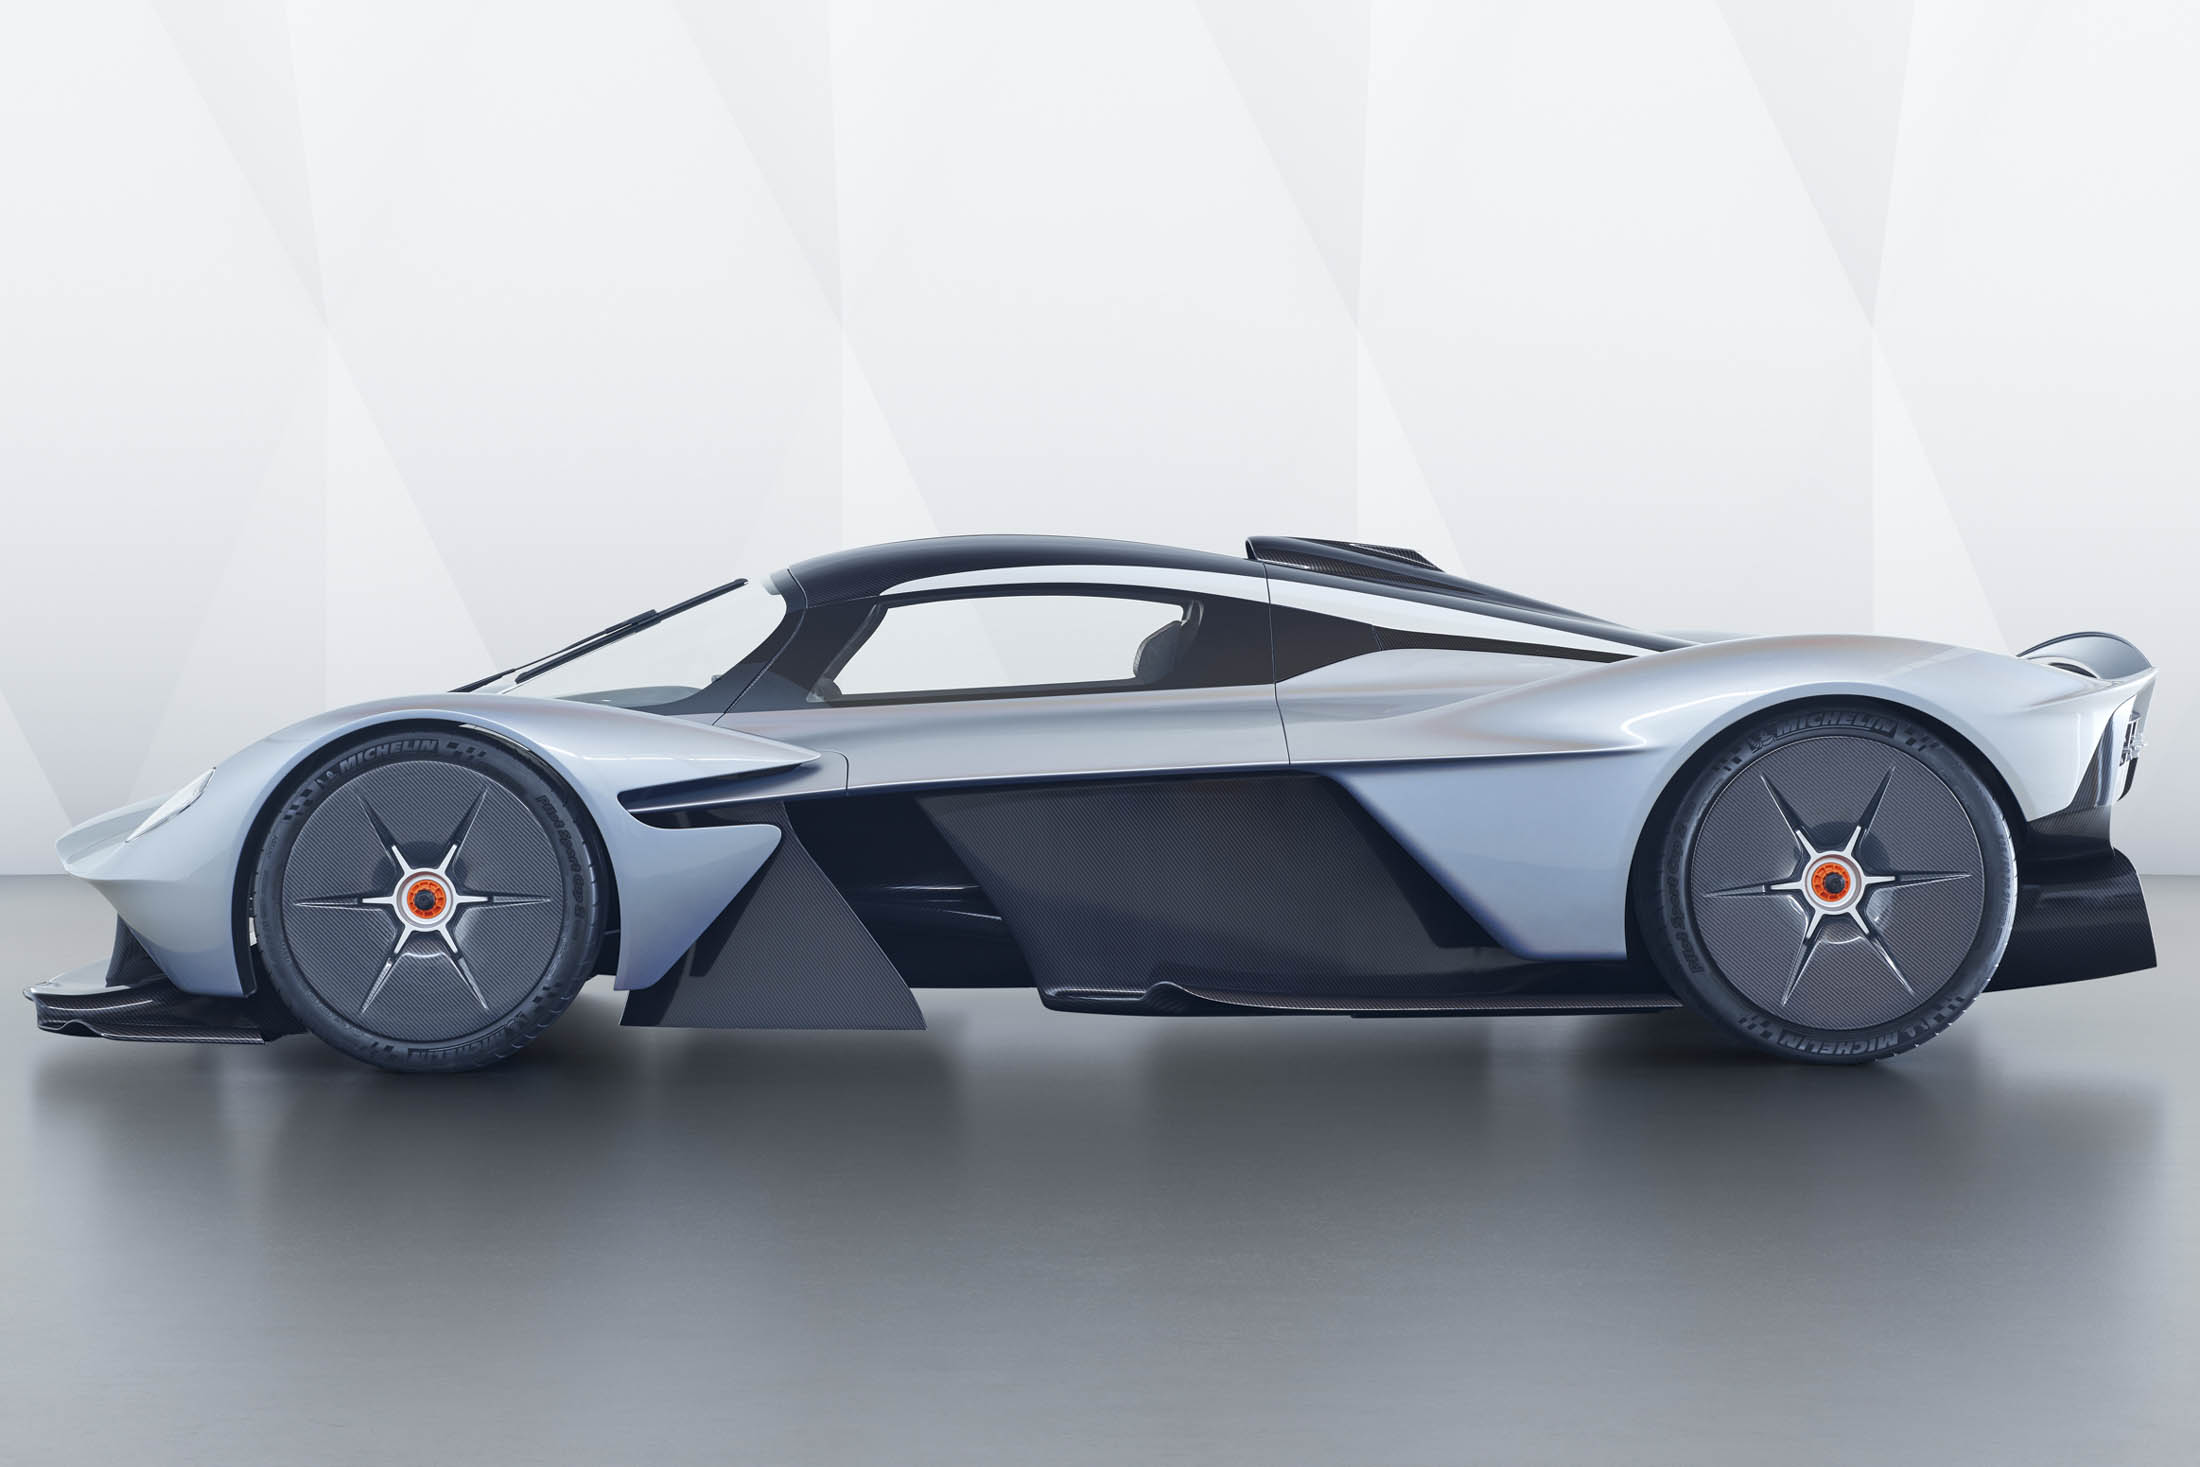 getting fitted for the $2.6 million aston martin valkyrie hypercar